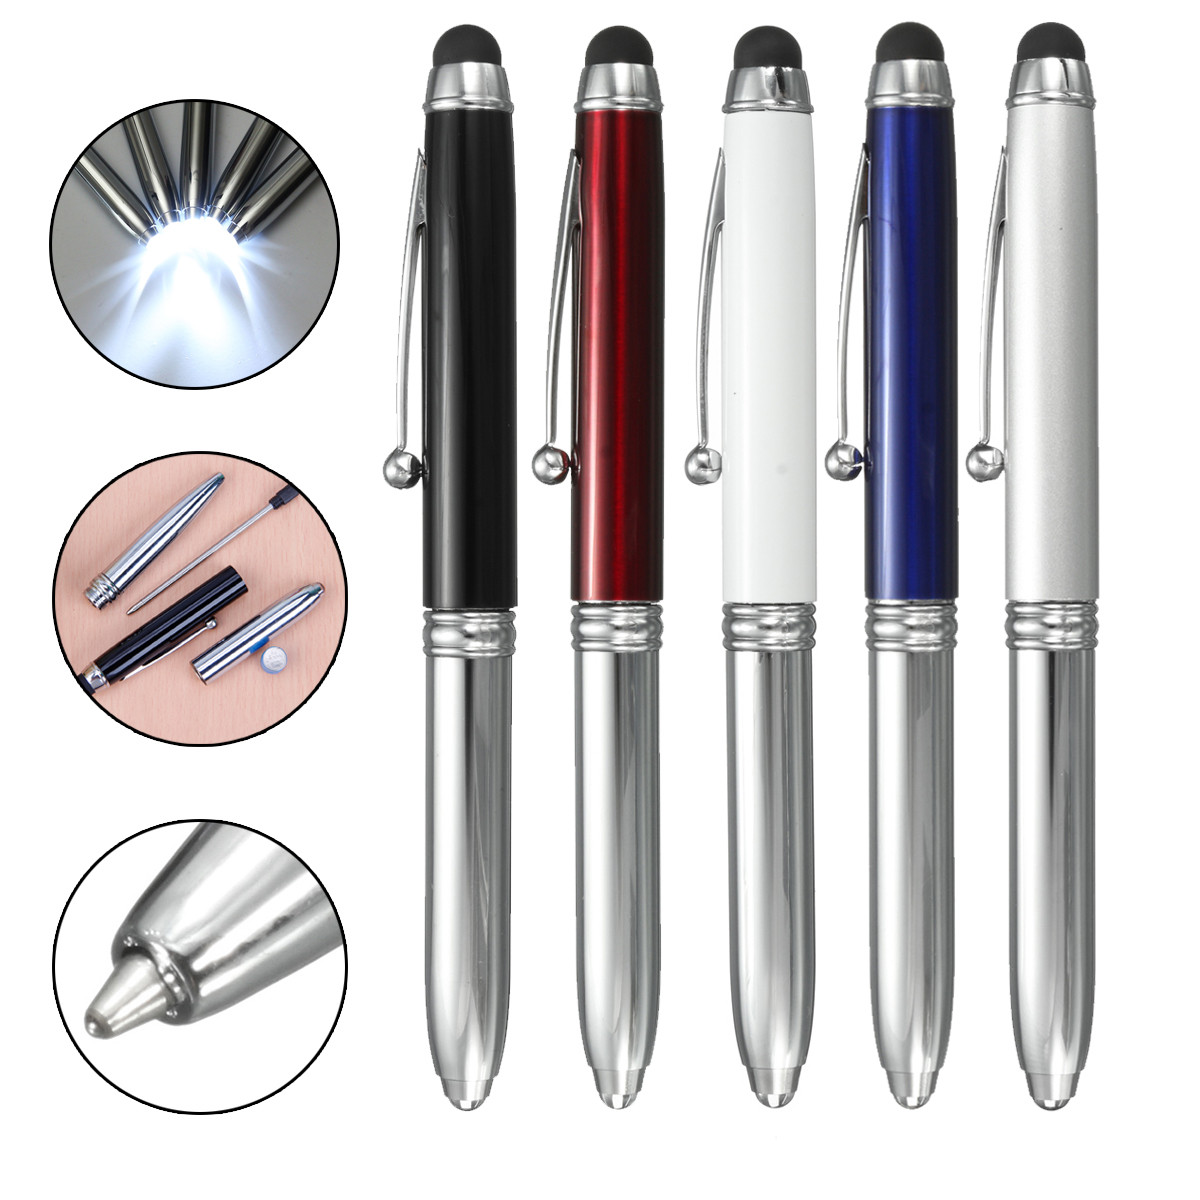 Portable 3 In 1 Touch Screen Stylus Ballpoint LED Light Pen For iPad iPhone